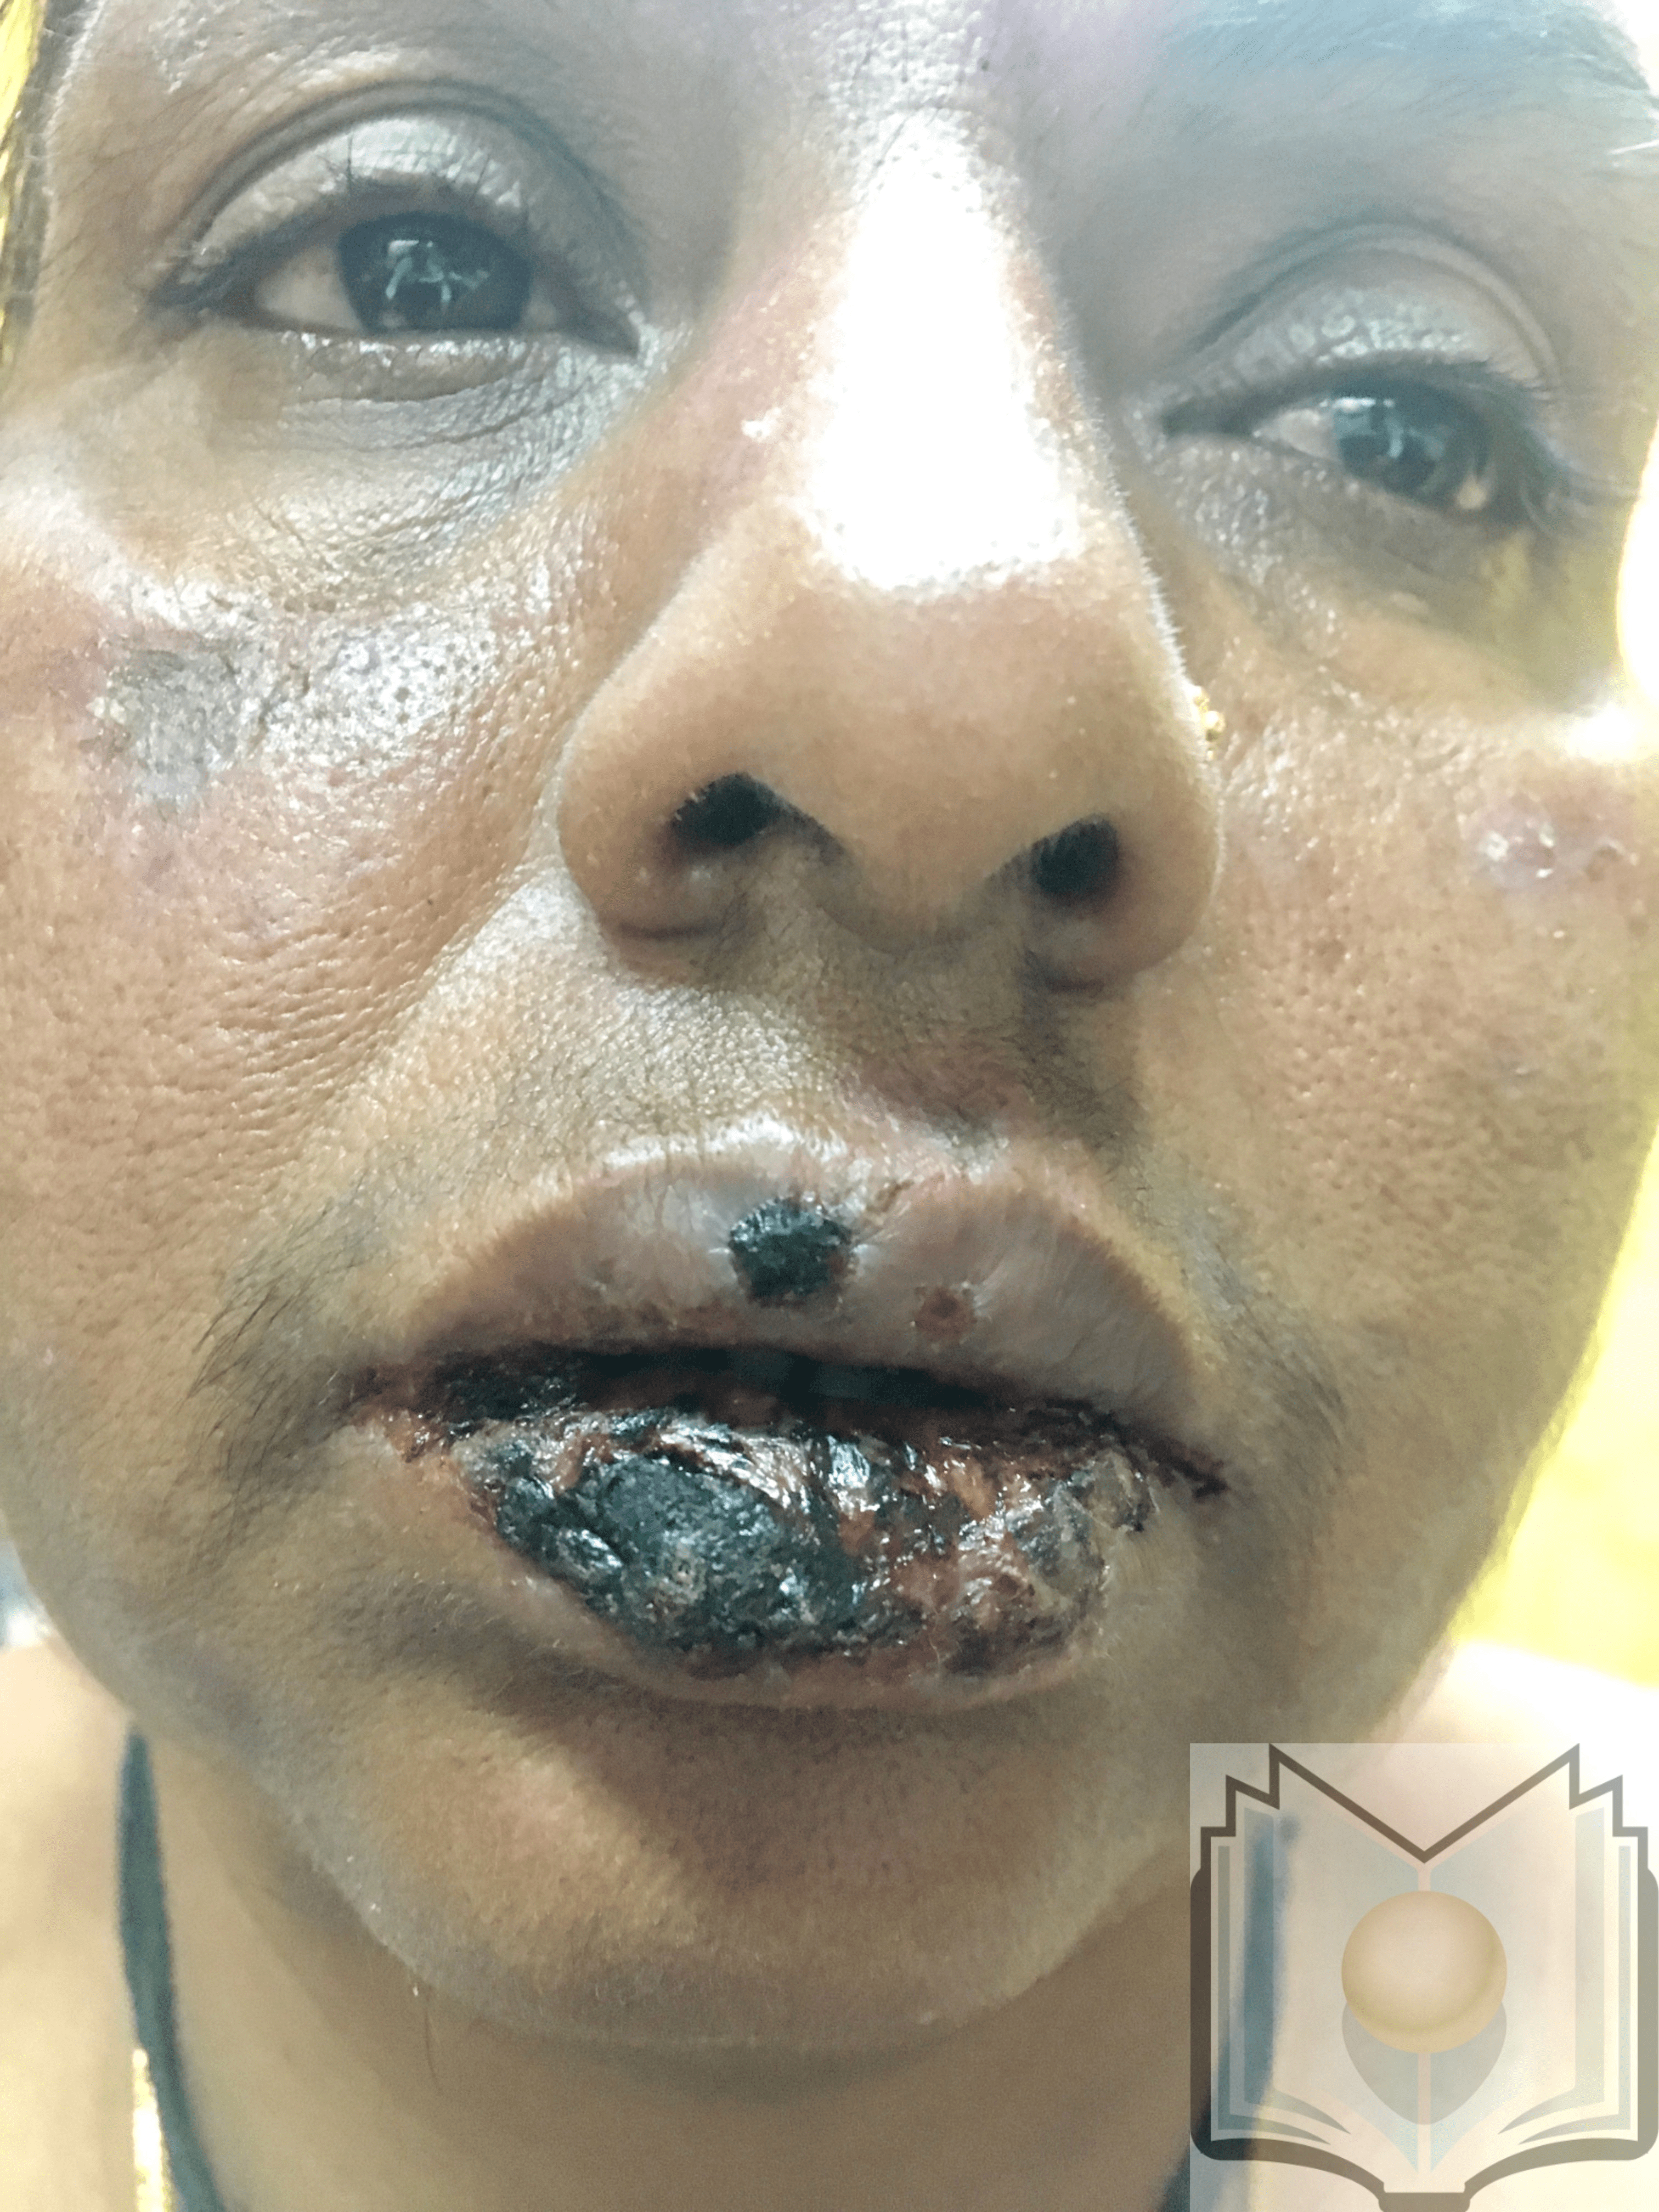 Oral Lesions of Erythema Multiformes